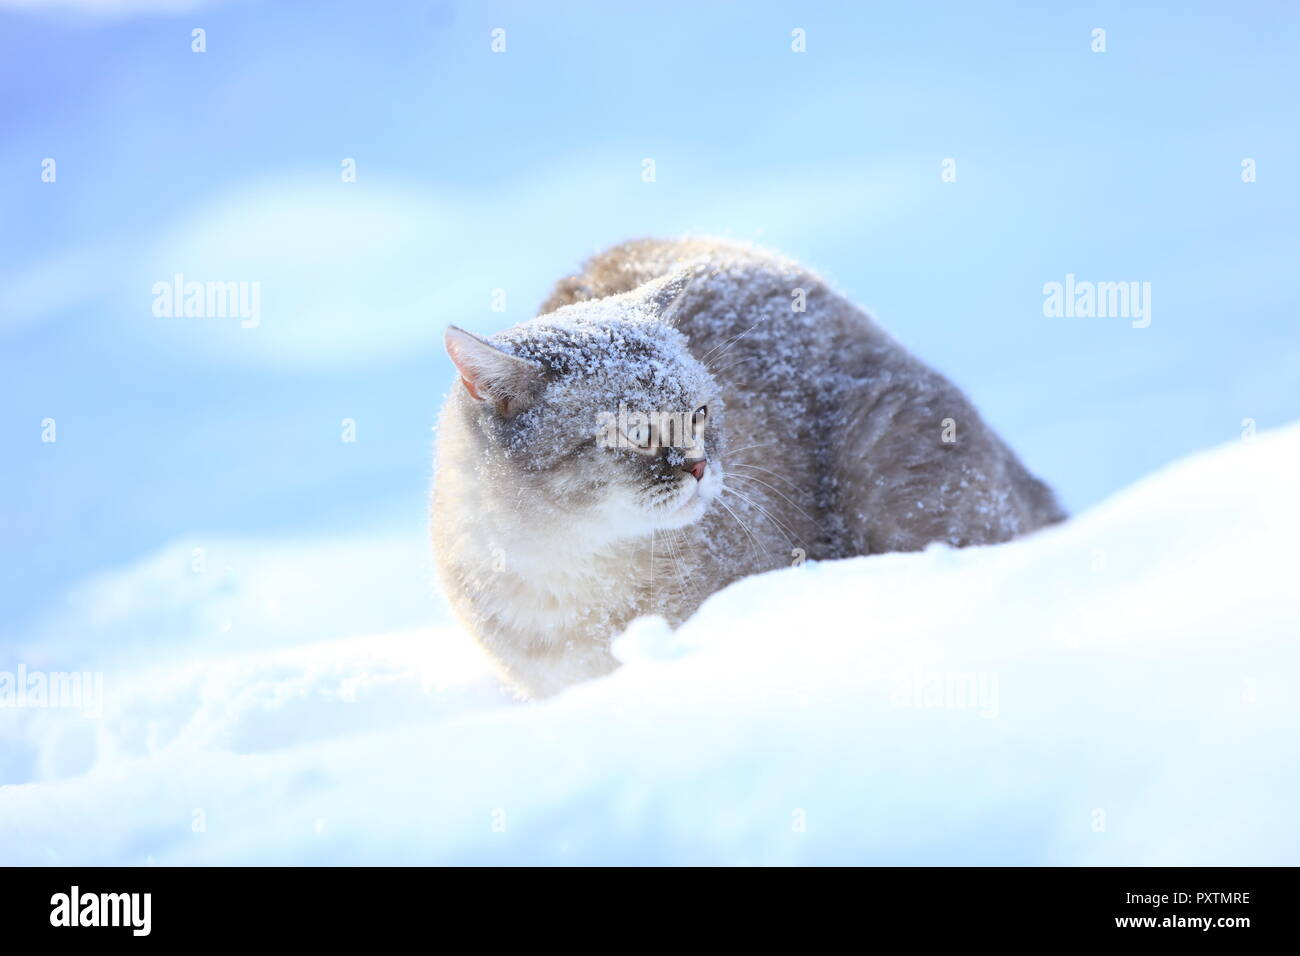 Siamese cat sits in deep snow in winter - Stock Image